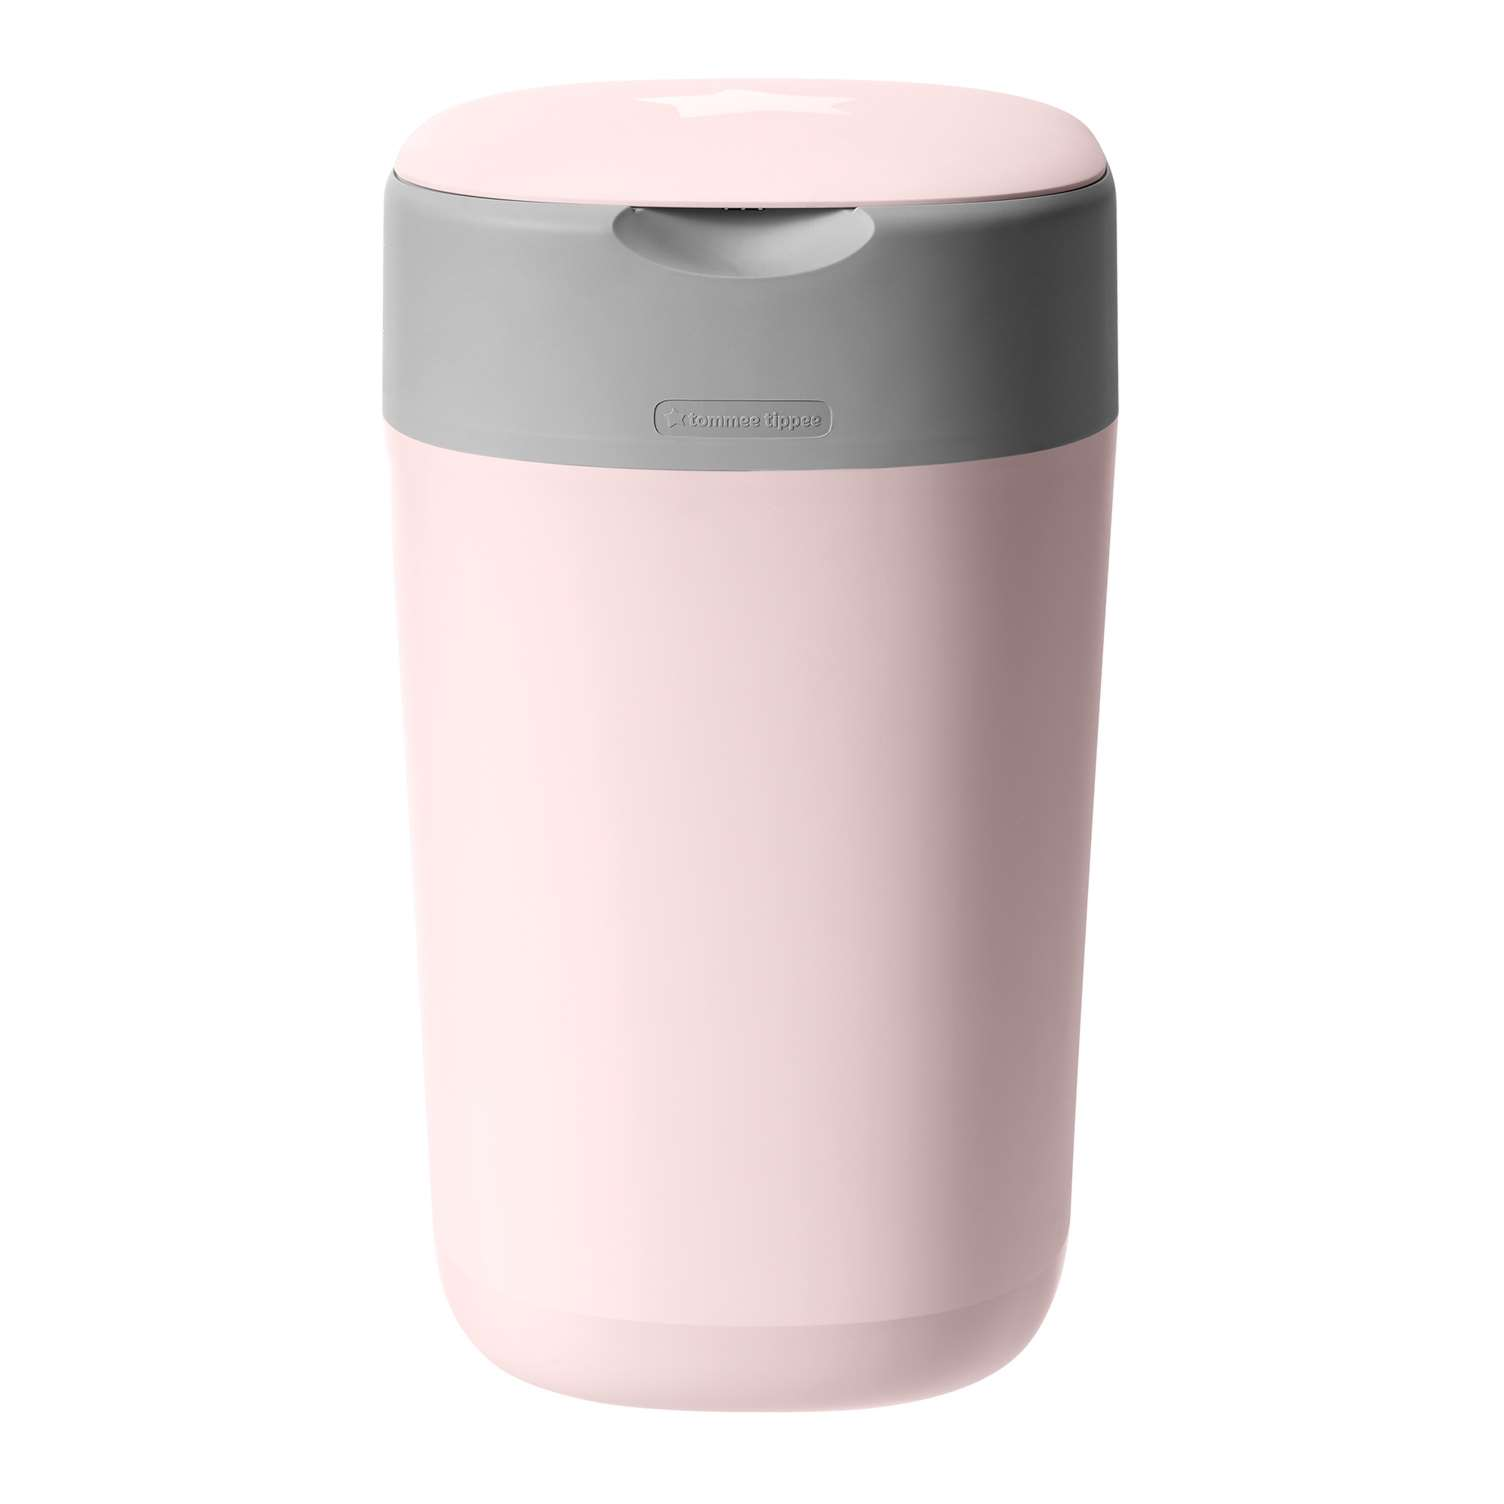 twist_and_click_bin_01_pink